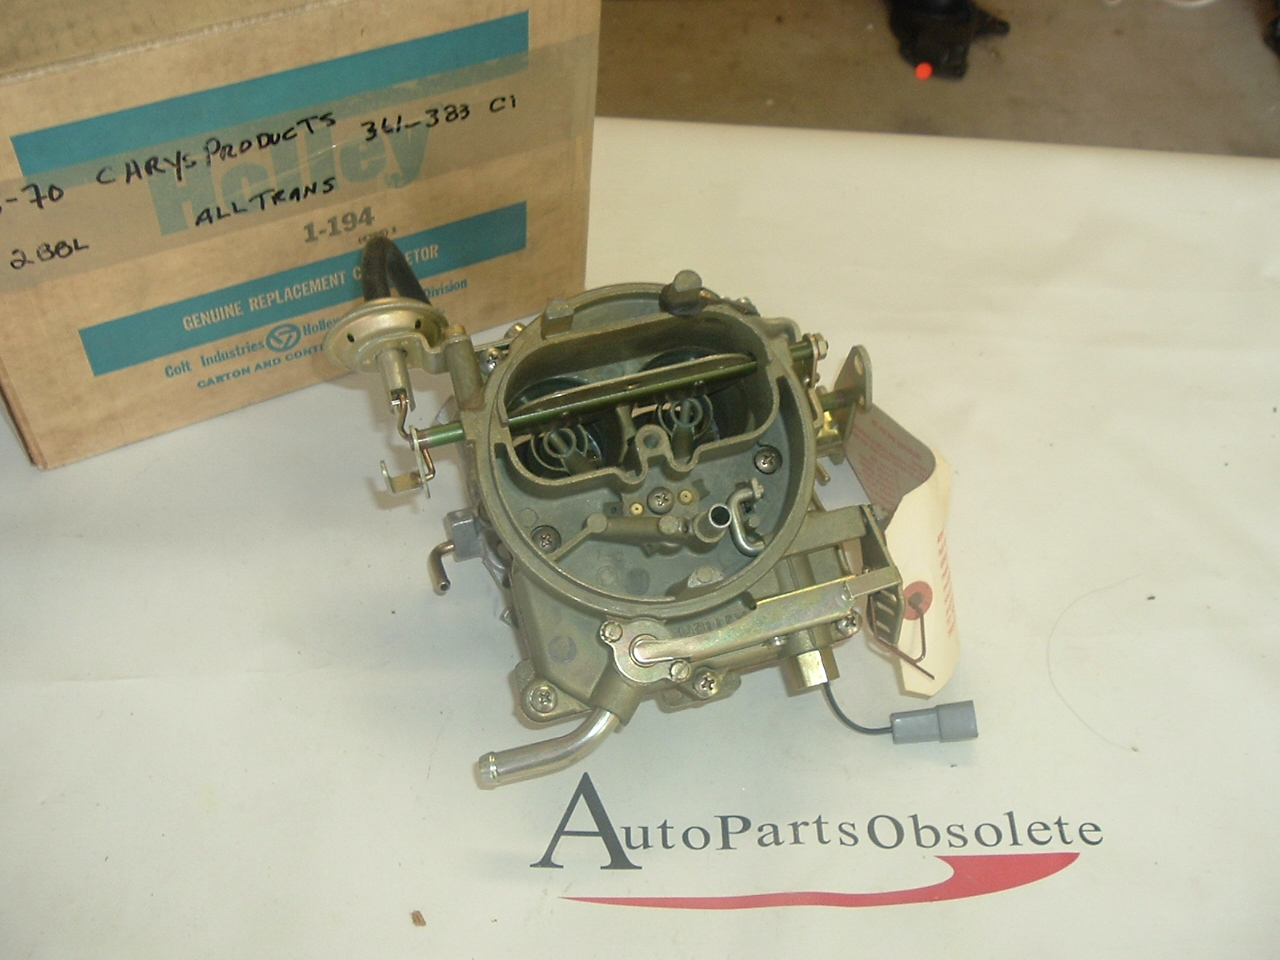 1959 - 1970 Chrysler Dodge Plymouth Mopar 360 361 383 carburetor nos Holley (a 1-194)